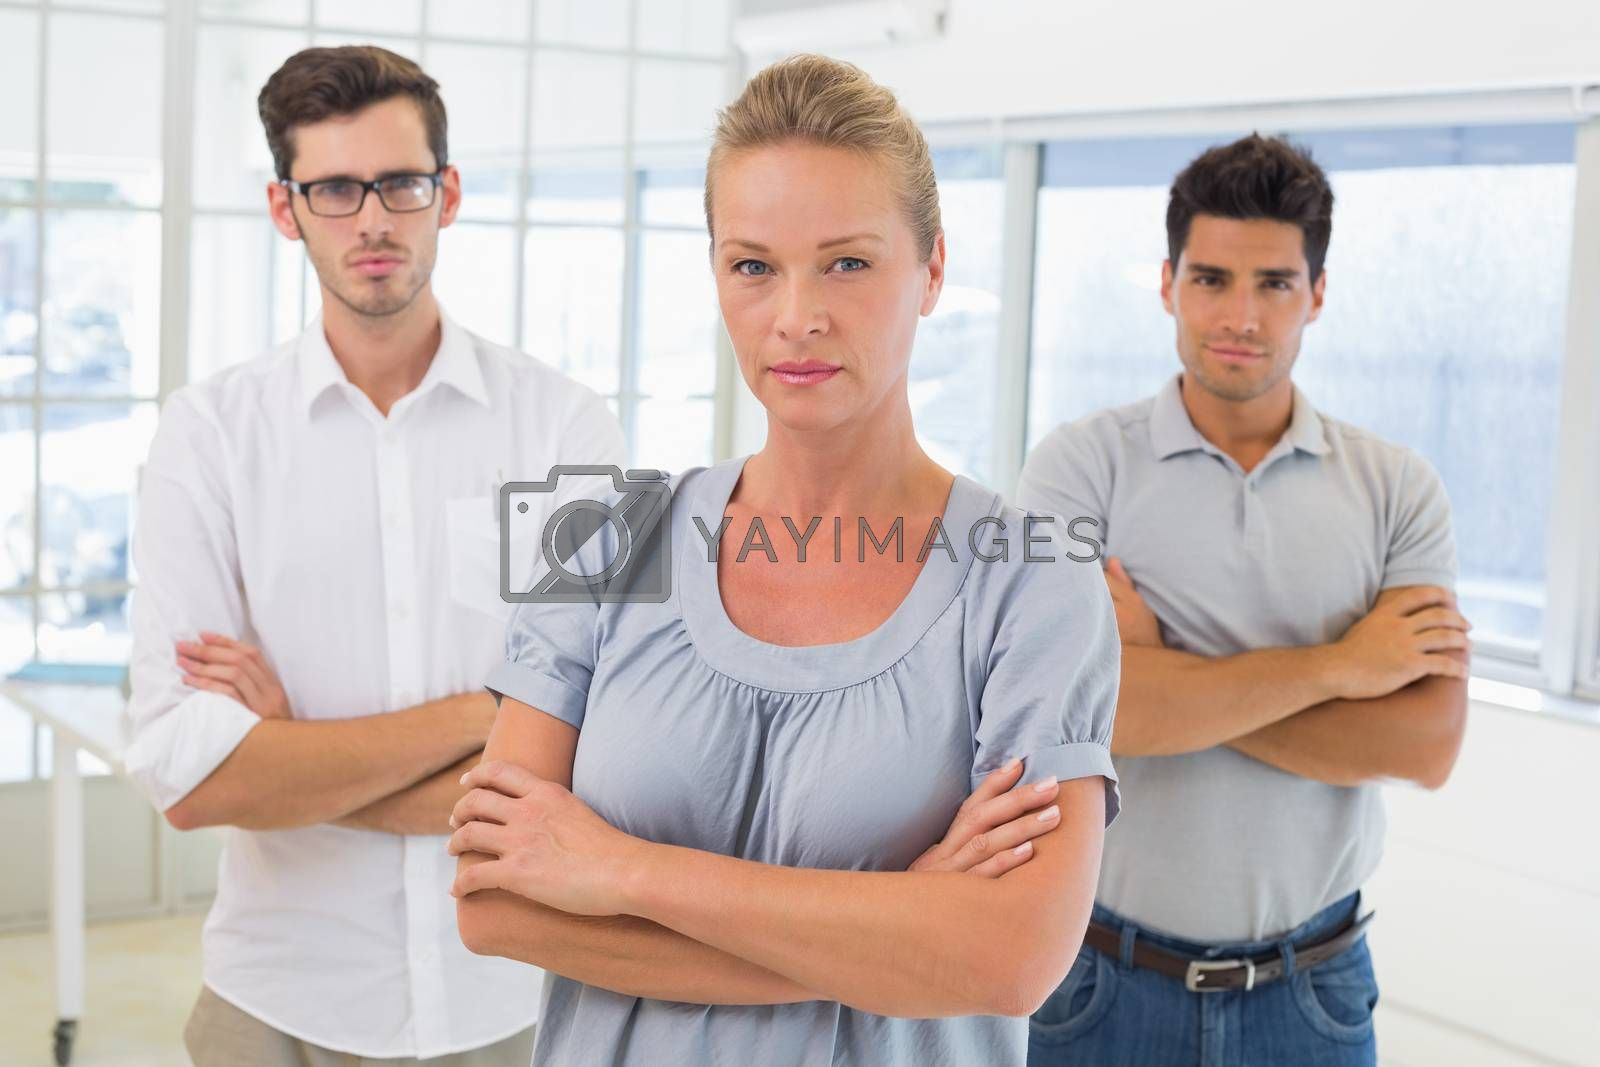 Royalty free image of Casual business team looking at camera with arms crossed by Wavebreakmedia